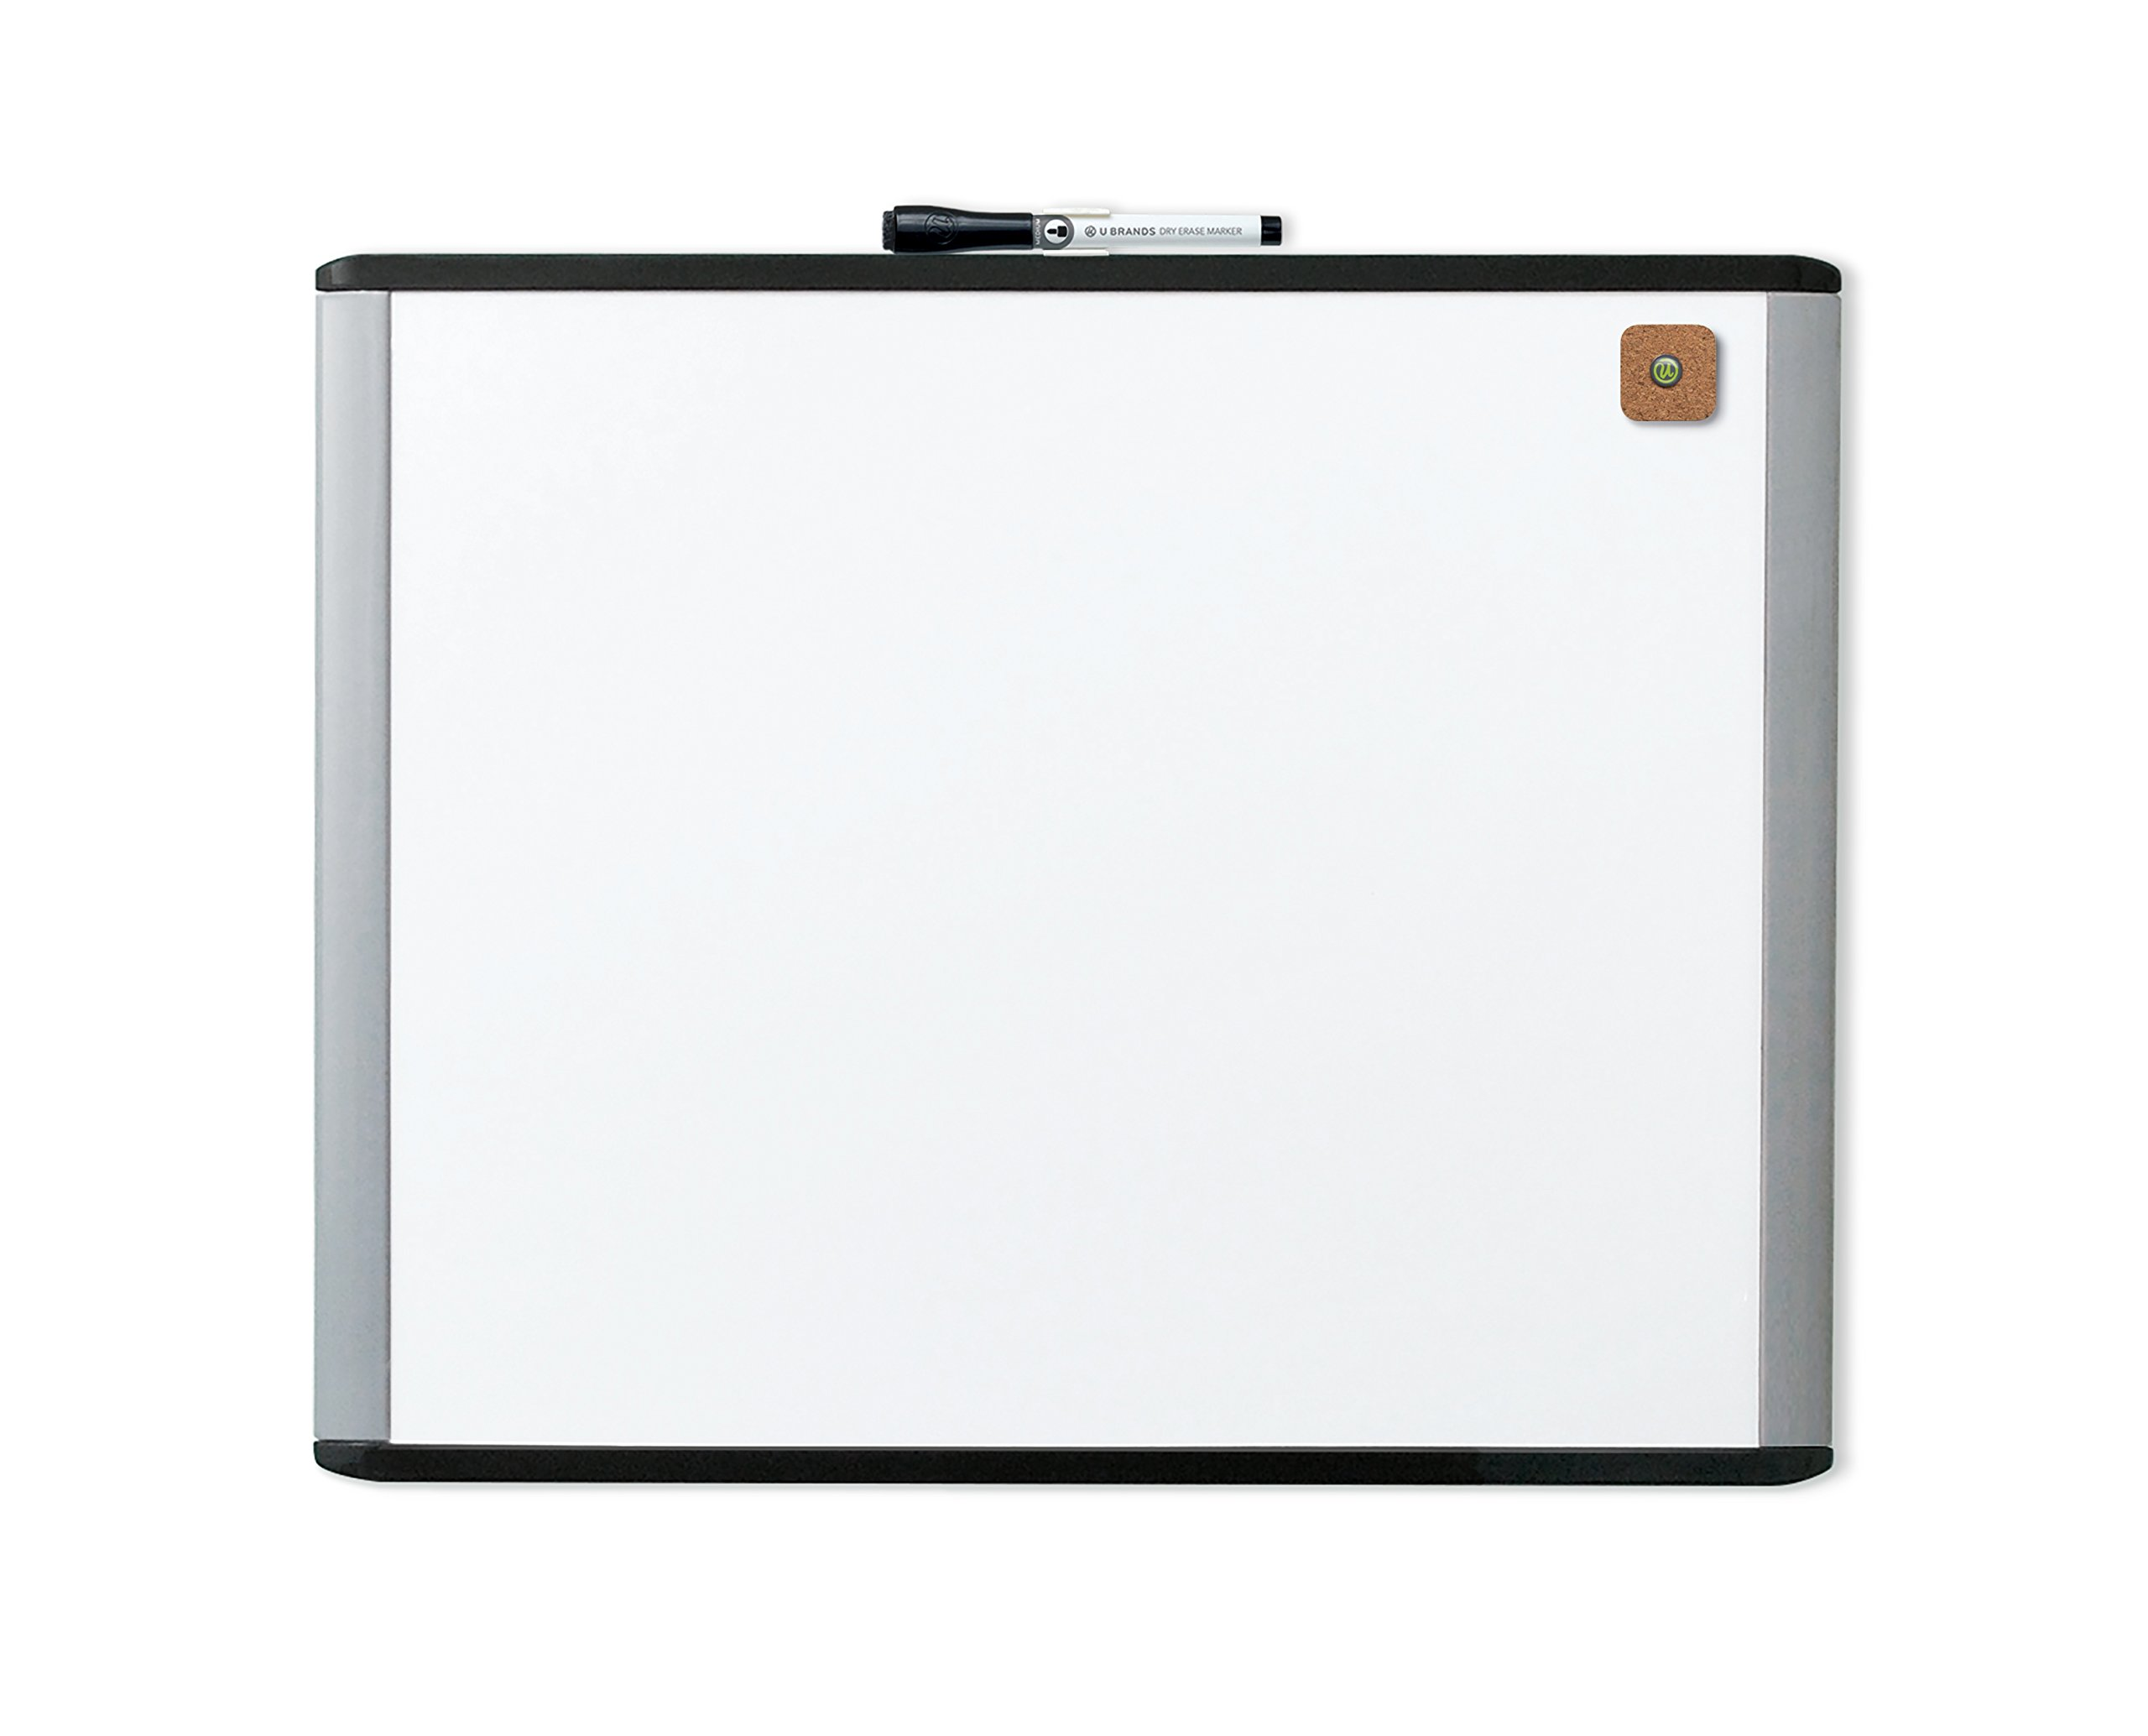 U Brands MOD Magnetic Dry Erase Board, 20 x 16 Inches, Black and Grey Frame